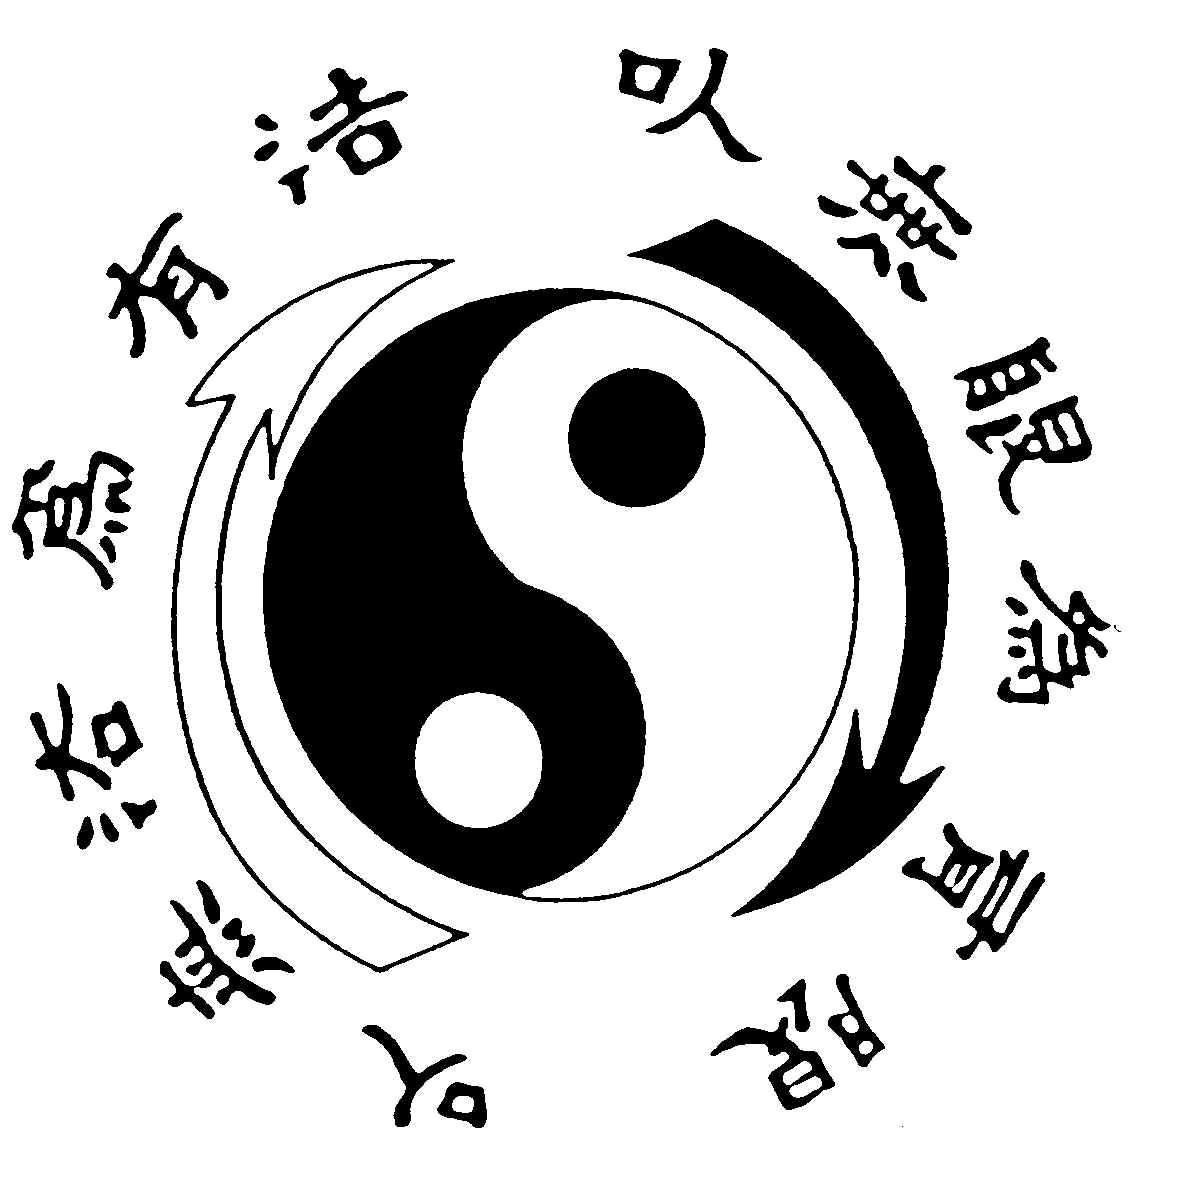 Jeet kune do symbol